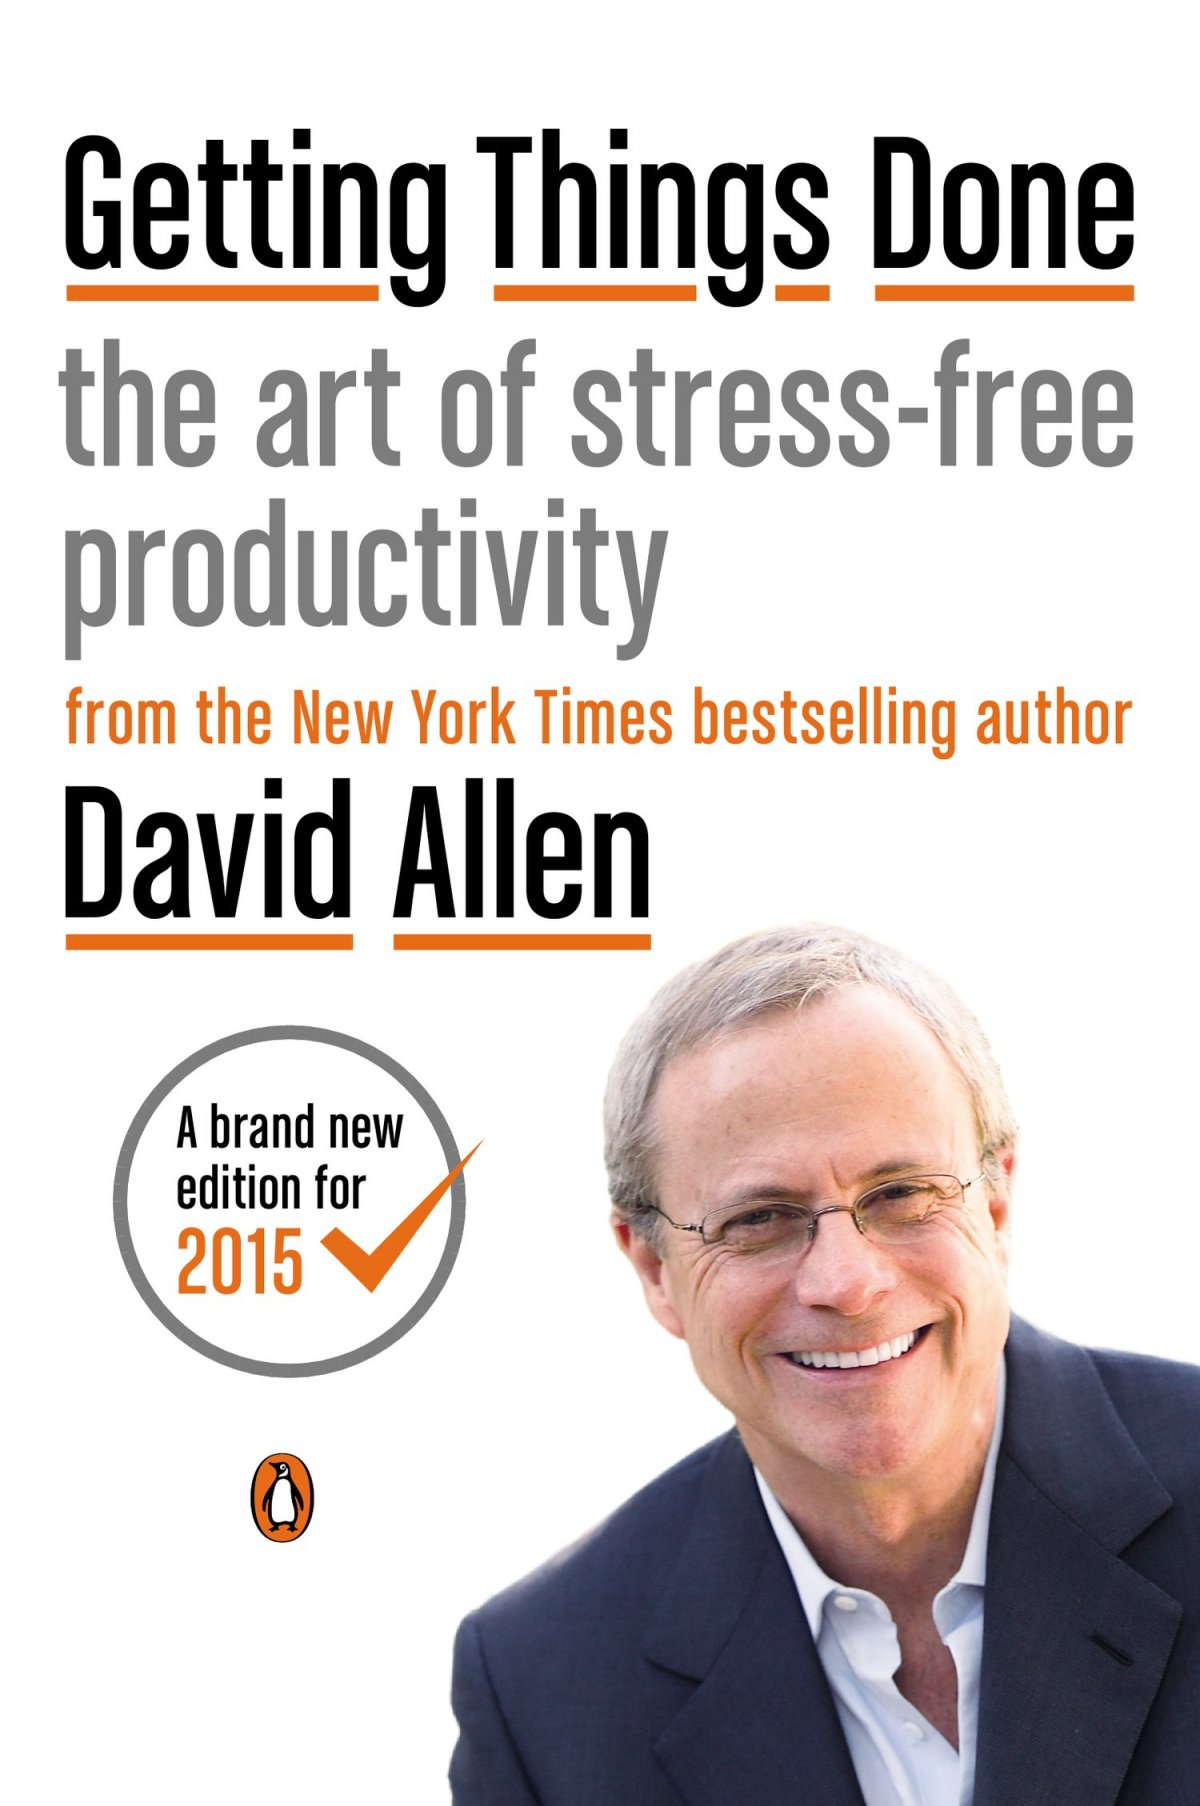 2-Getting Things Done, Yazar: David Allen